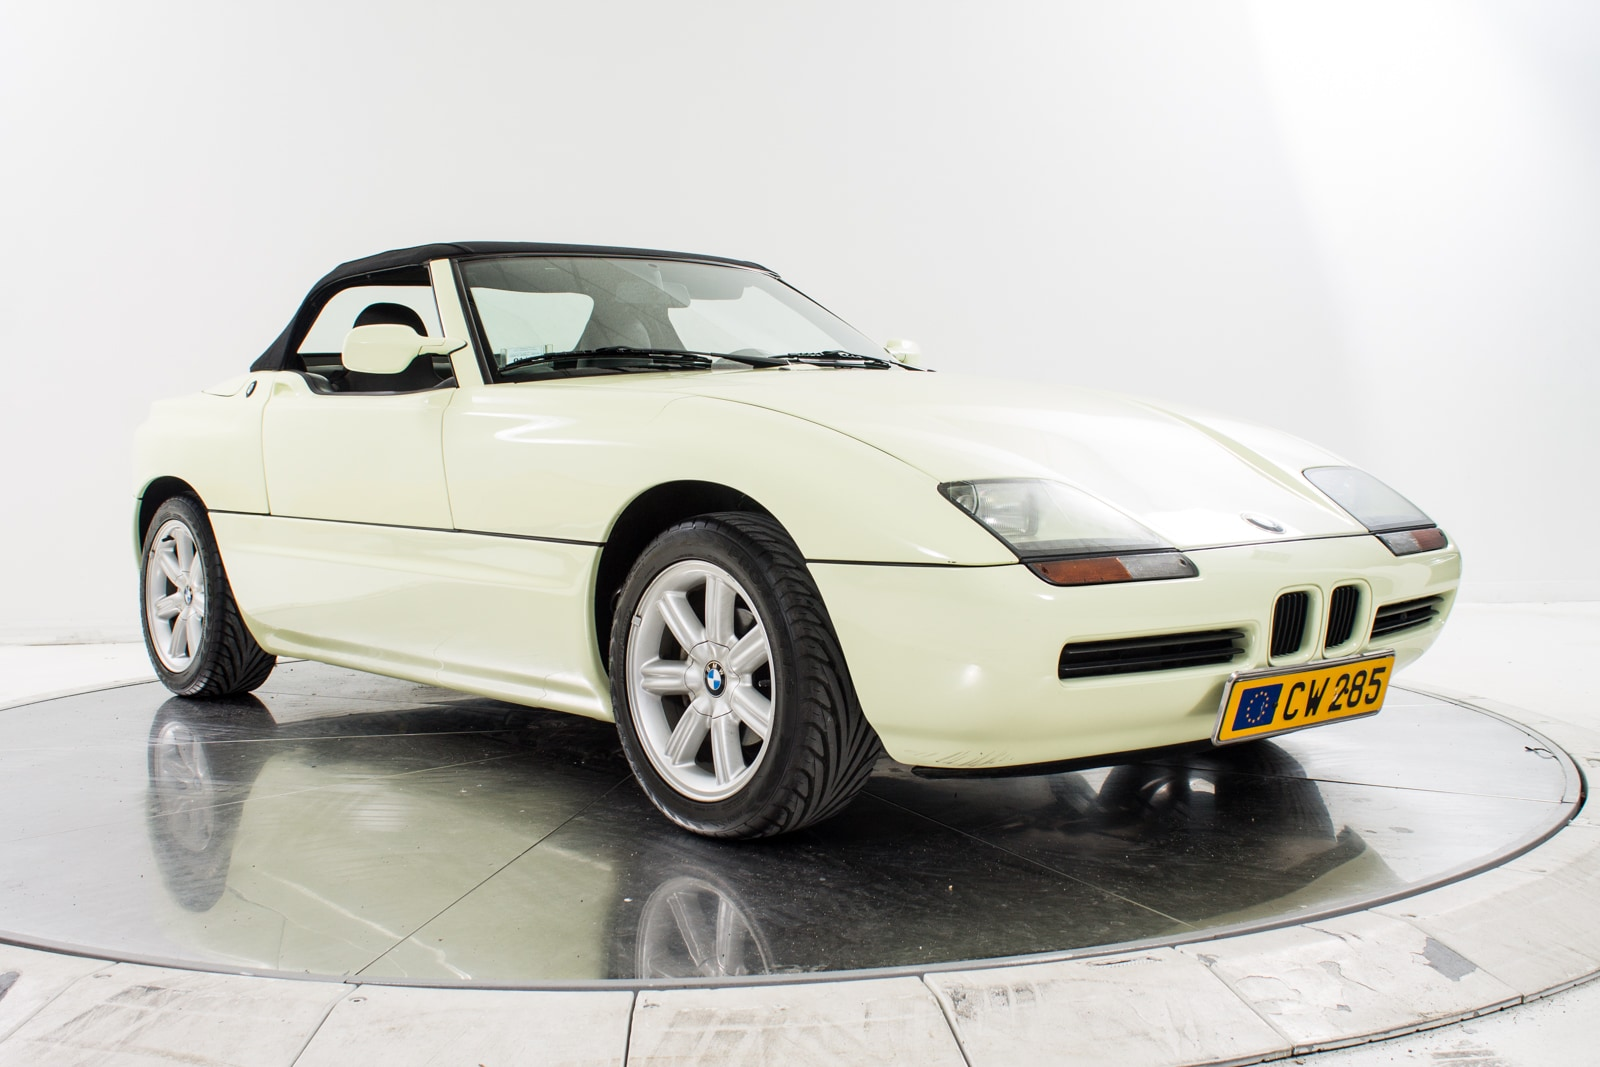 used 1990 bmw z1 for sale plainview near long island ny vin wbaba91000al05367. Black Bedroom Furniture Sets. Home Design Ideas